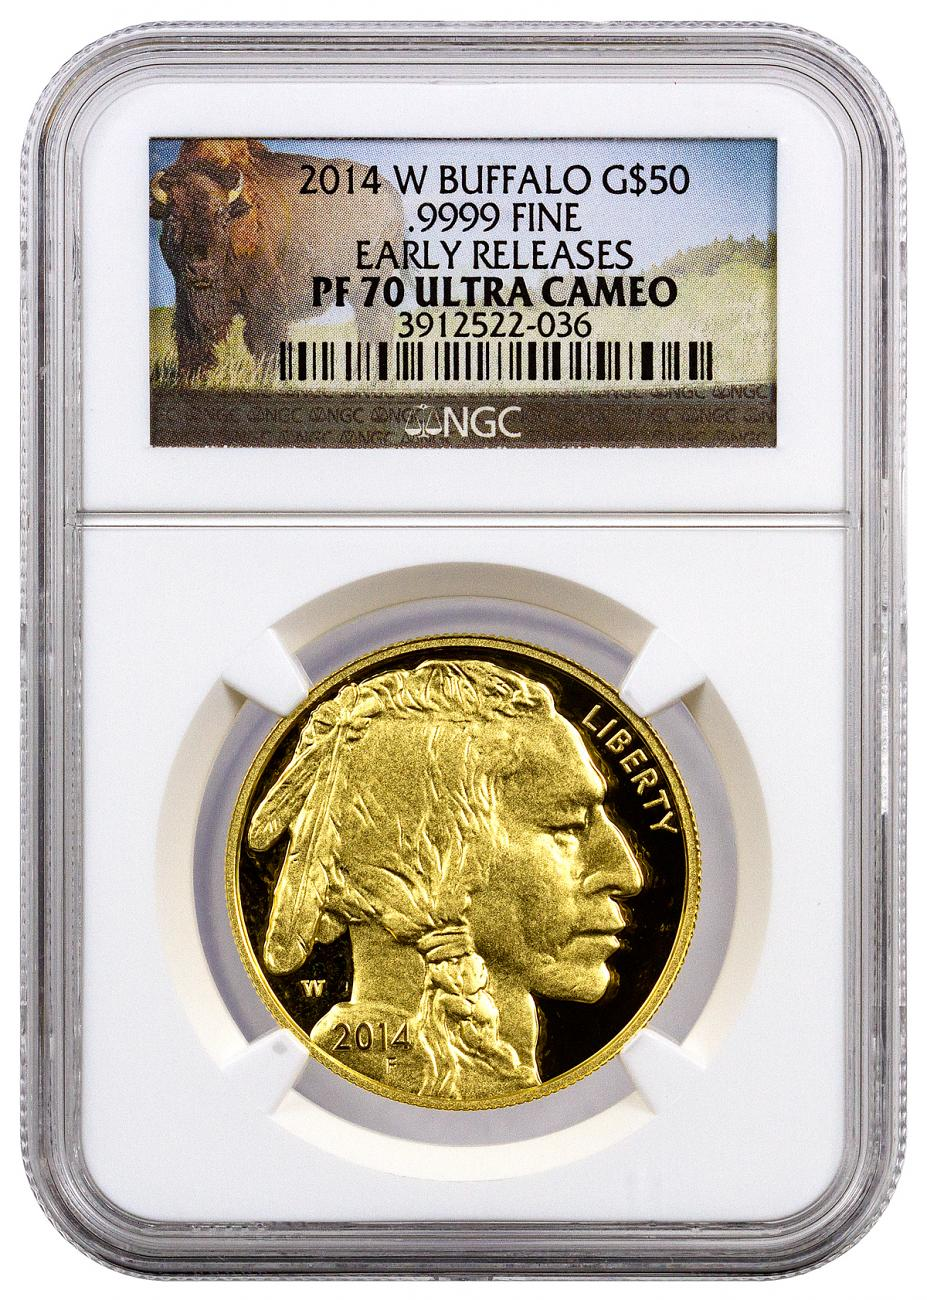 2014-W 1 oz Gold Buffalo Proof $50 NGC PF70 UC ER (Buffalo Label)